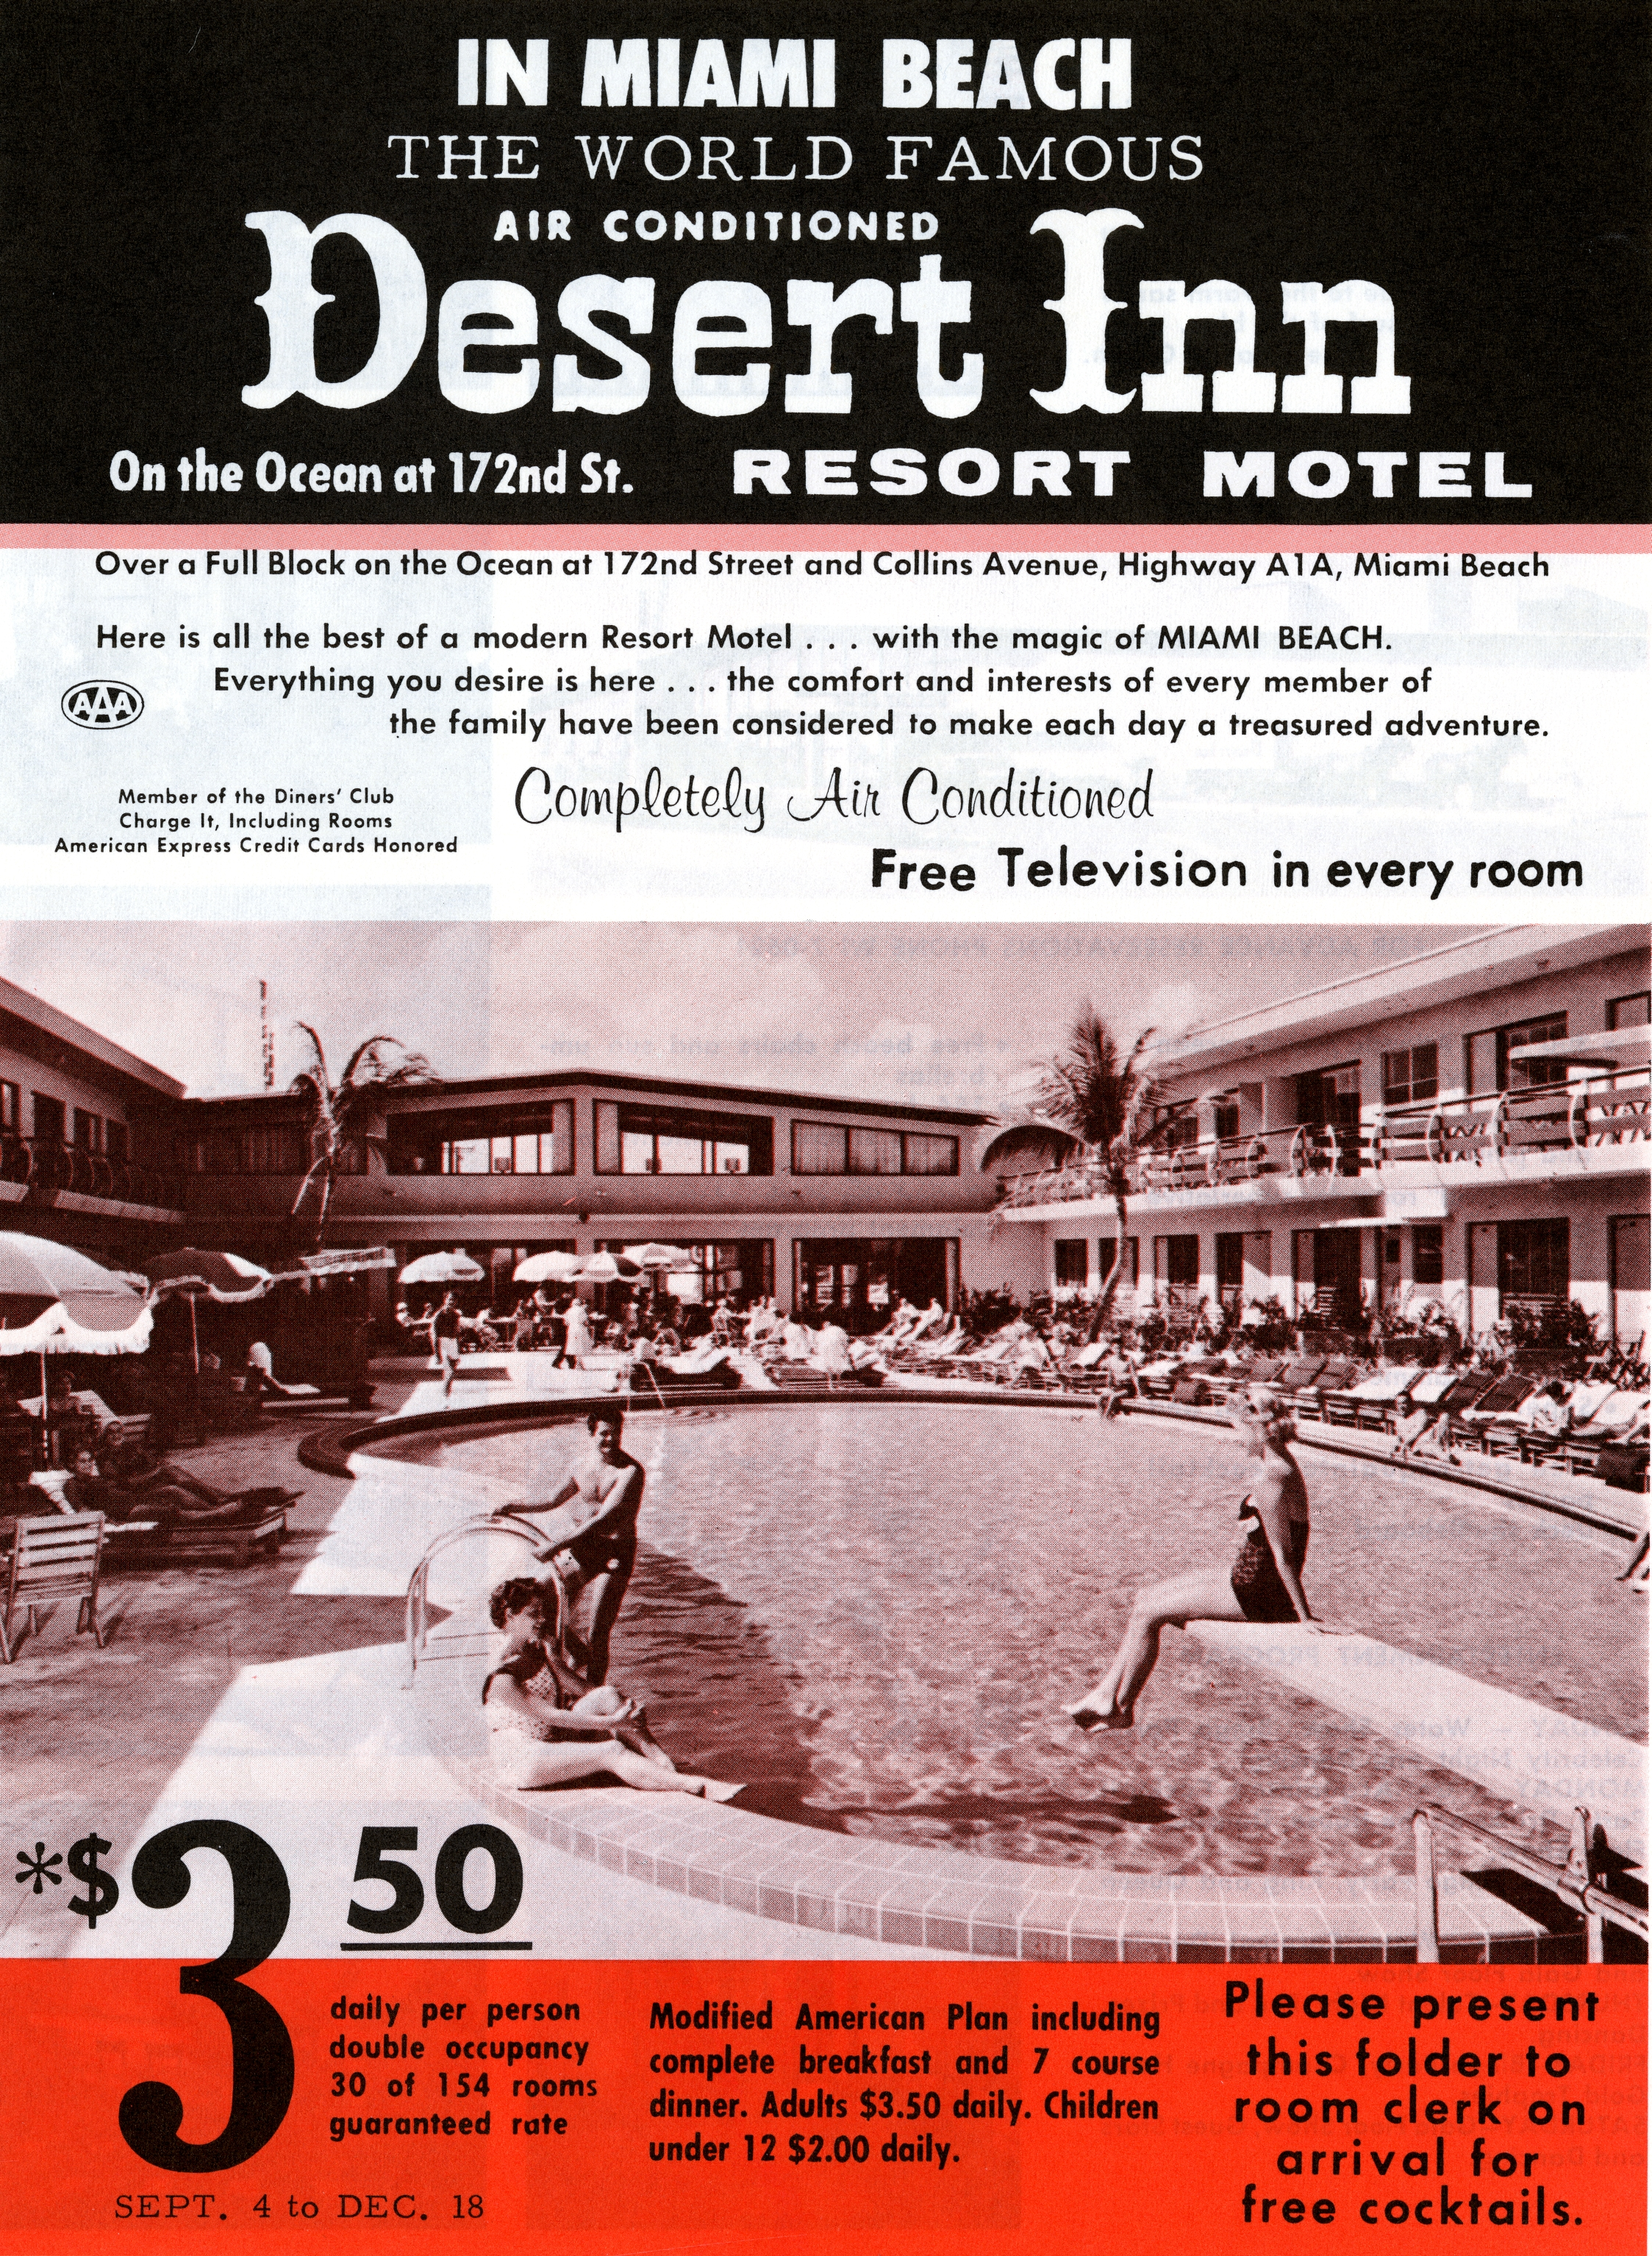 Desert Inn Resort Motel, Miami Beach, Florida.